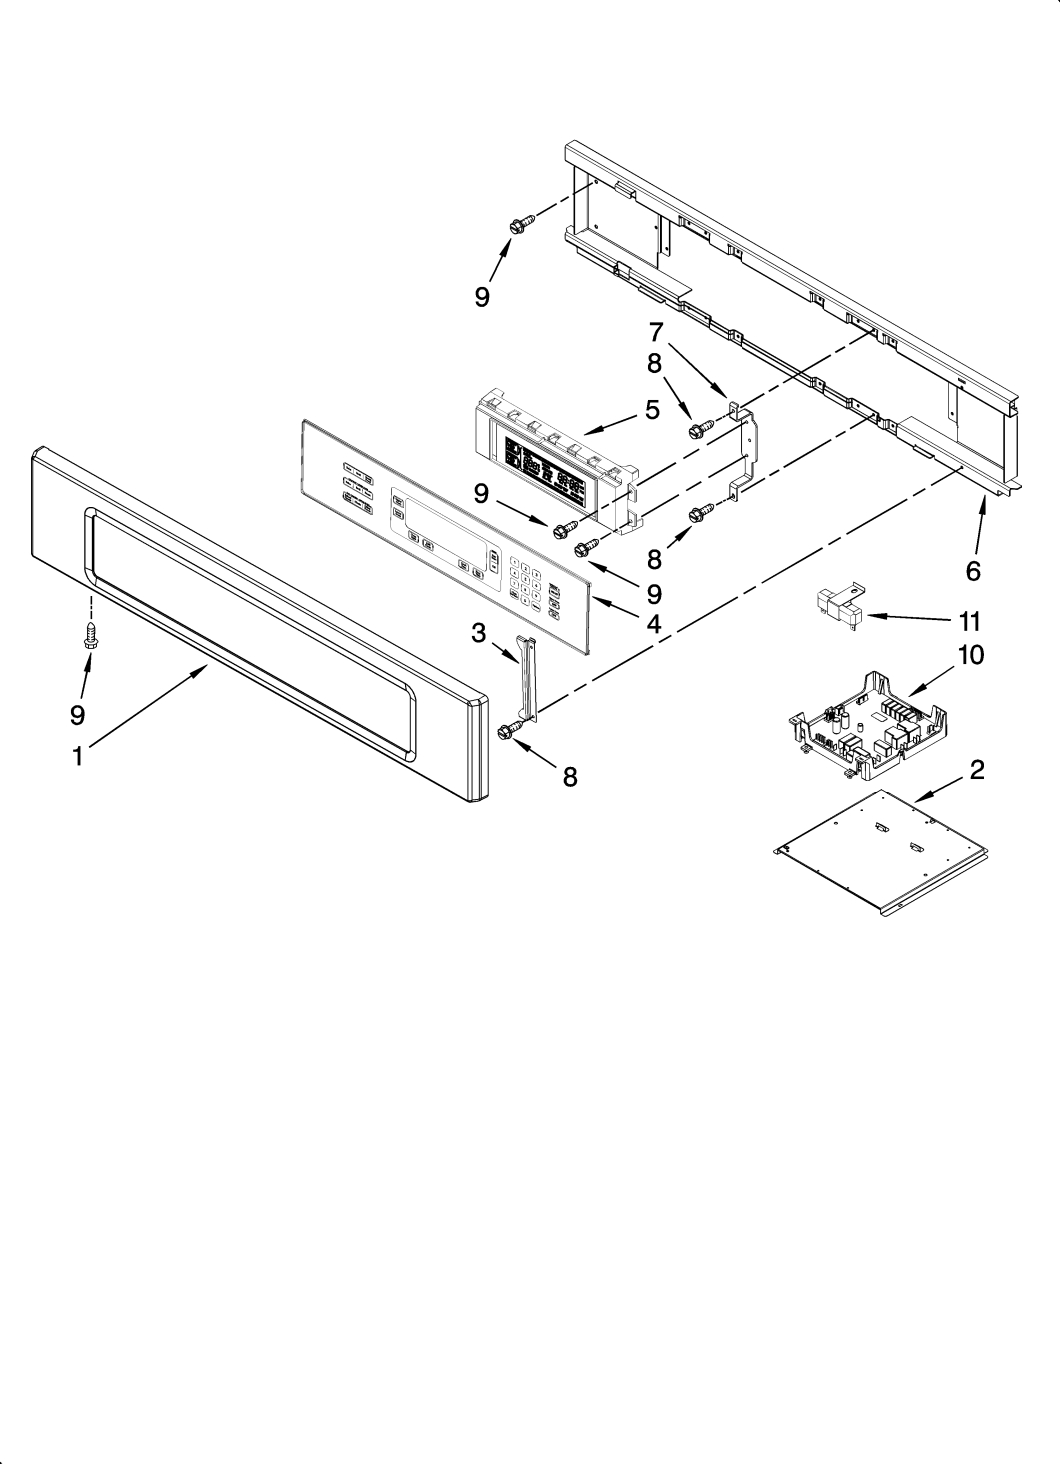 Kitchenaid Superba Refrigerator Parts Diagram Dandk